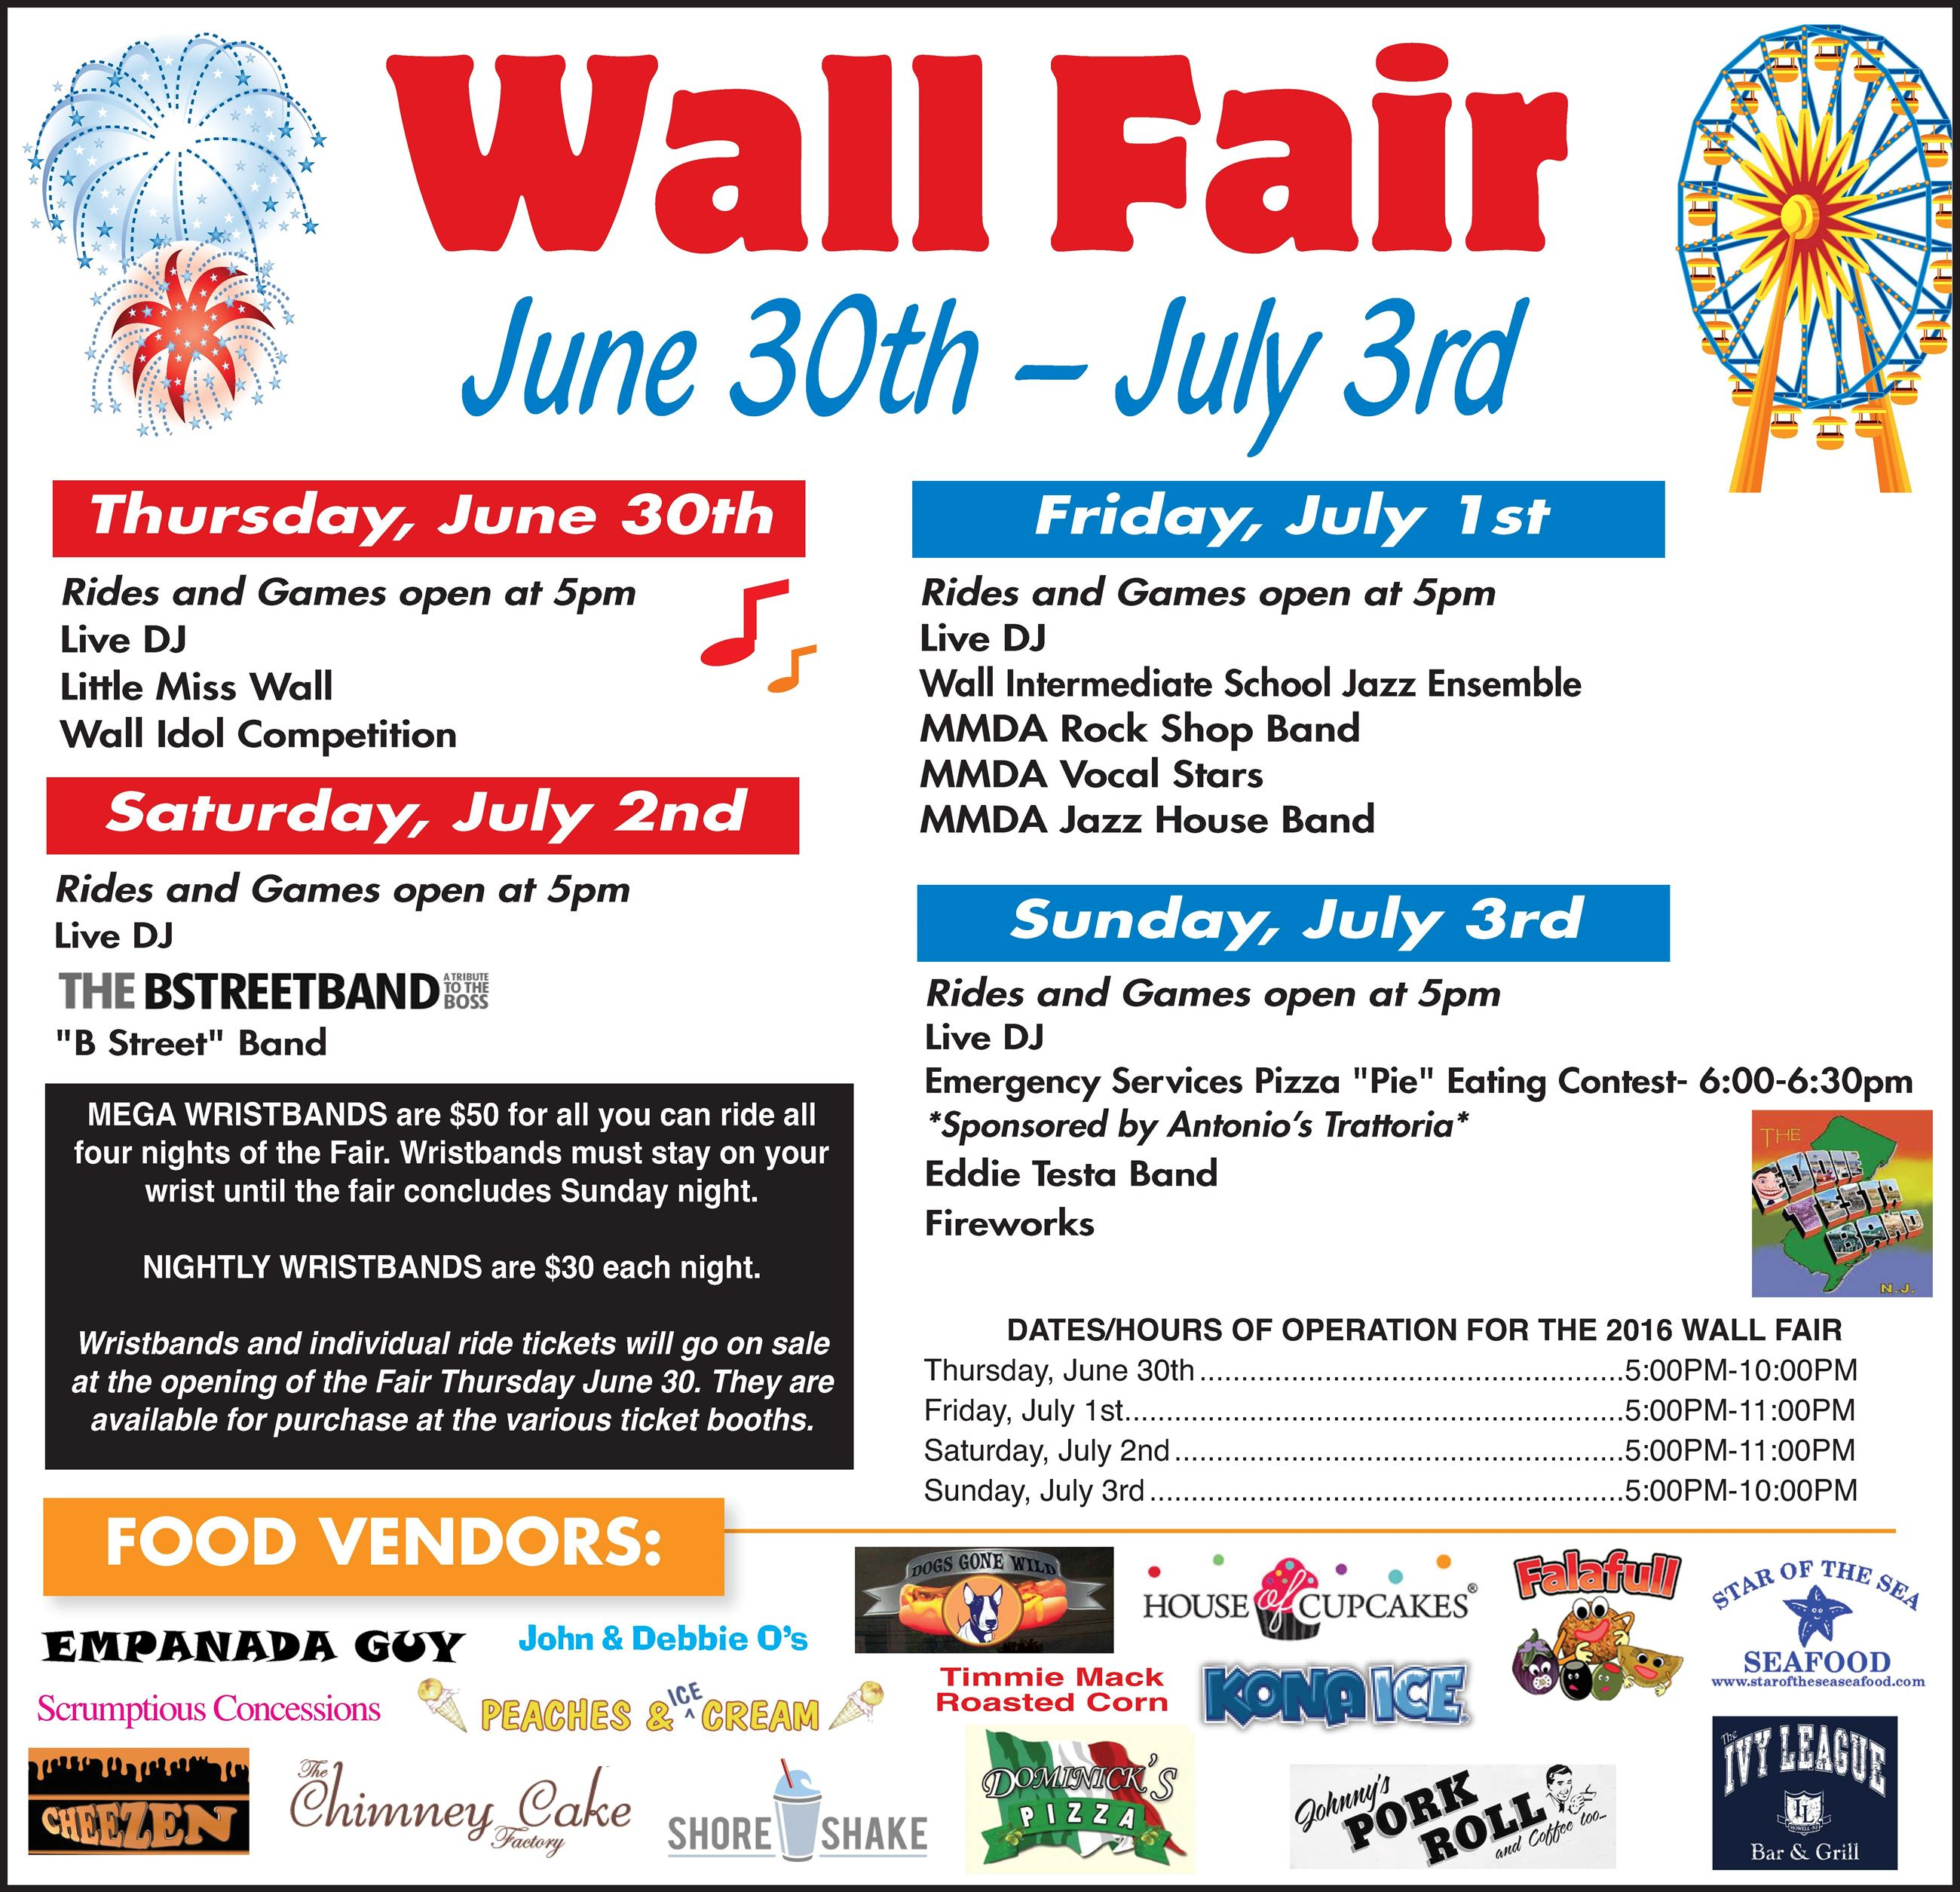 Wall Fair Display Ad